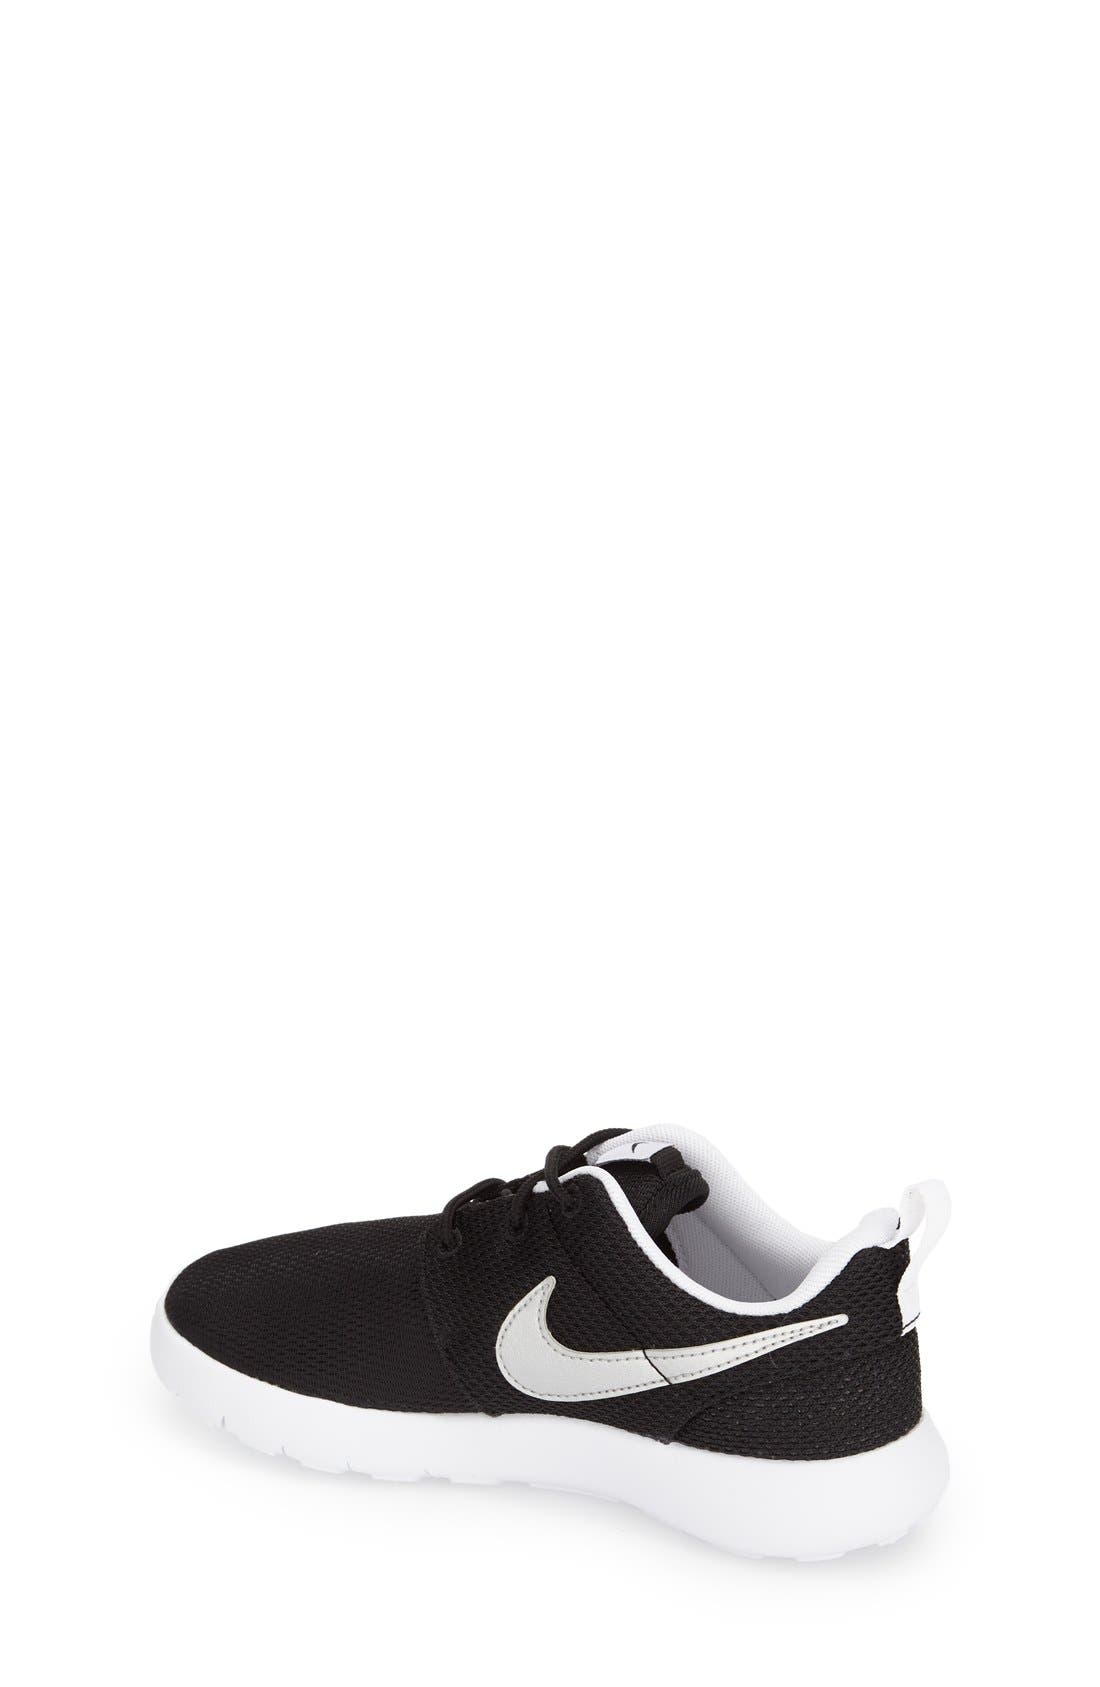 Roshe Run Sneaker,                             Alternate thumbnail 39, color,